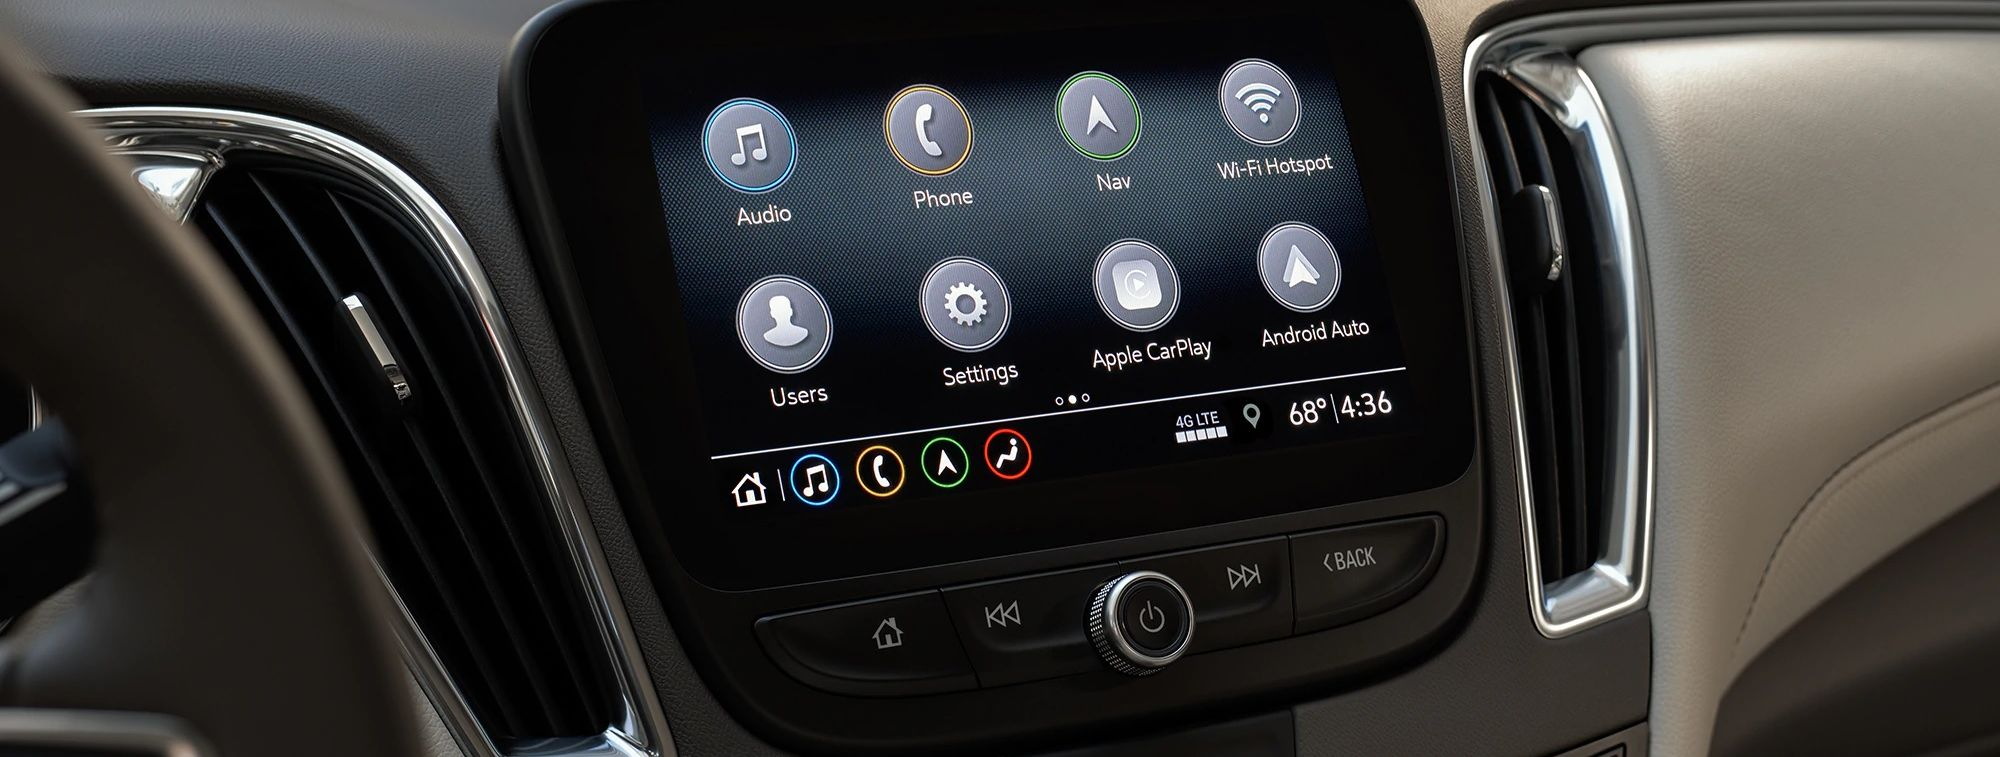 2019 Chevrolet Malibu Touchscreen